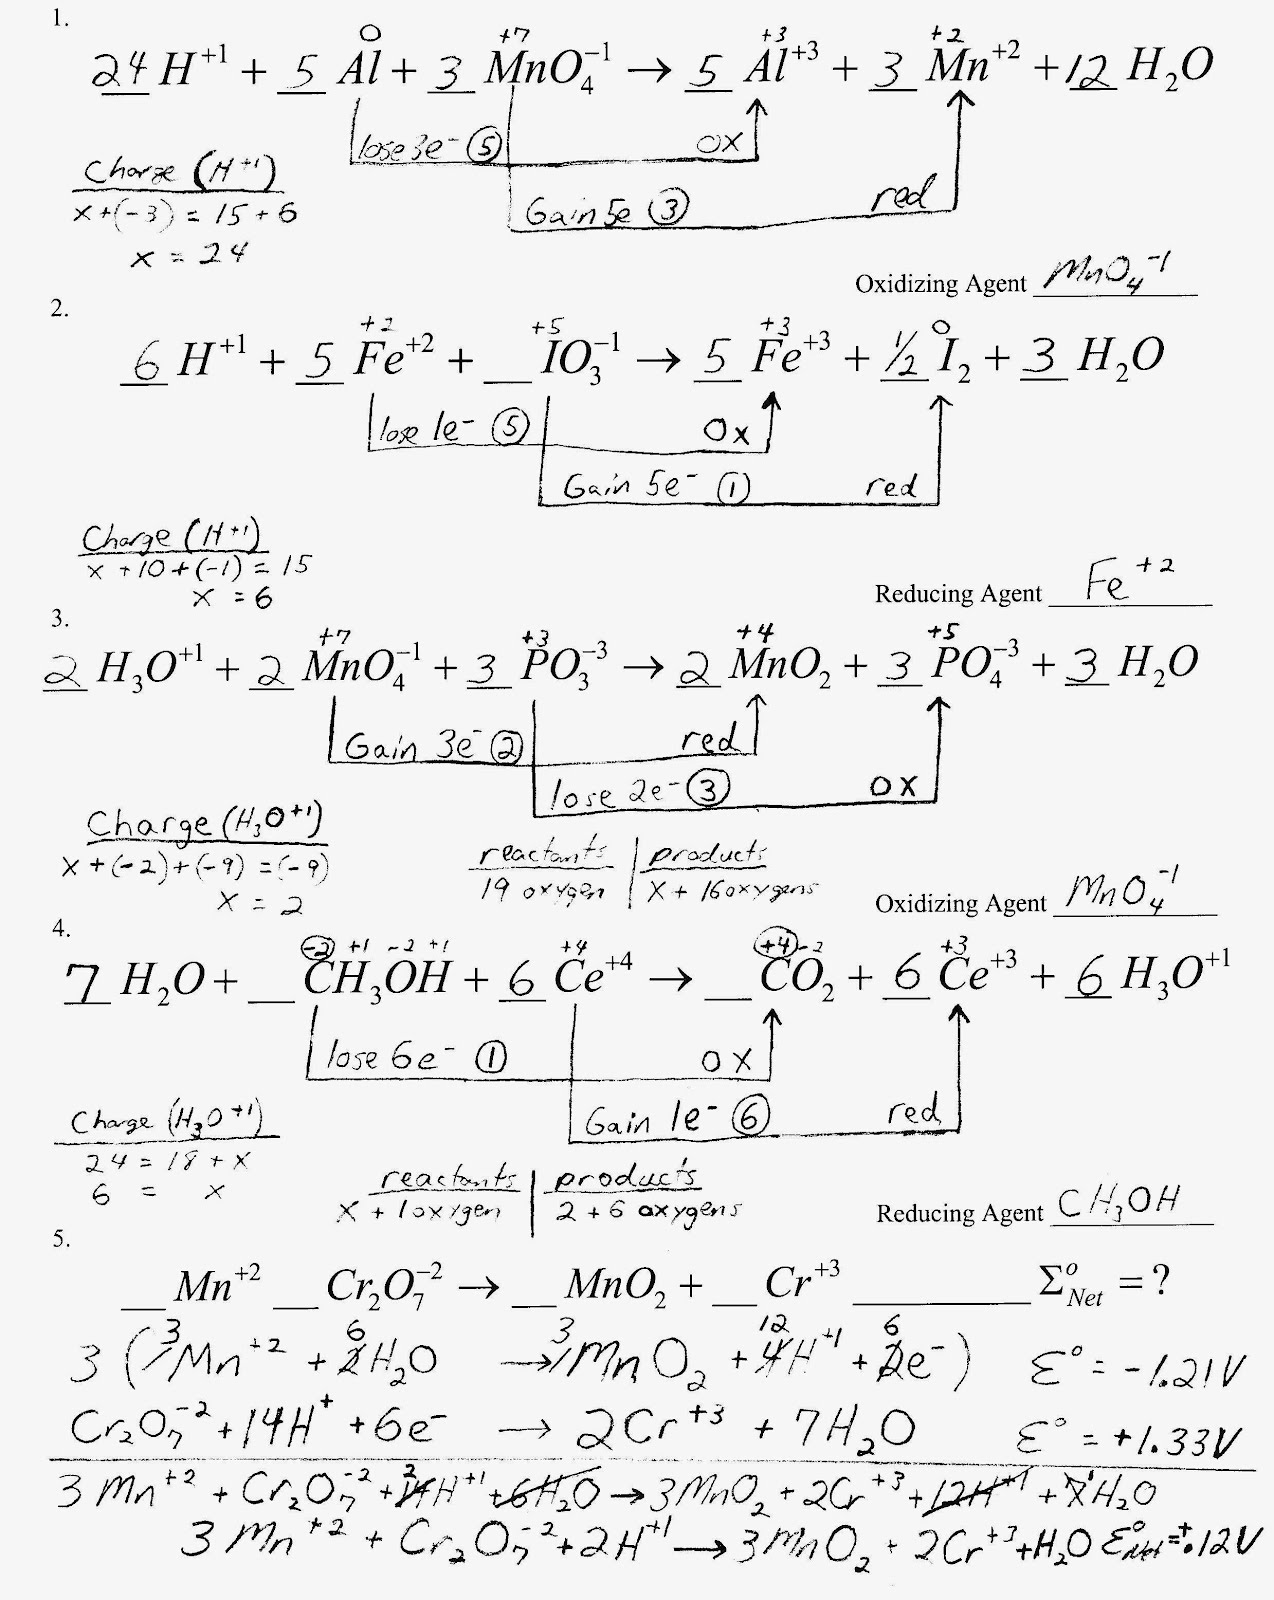 Free Worksheet Chapter 20 Worksheet Redox chapter 20 worksheet redox photos beatlesblogcarnival mr brueckners chemistry class hhs 2011 12